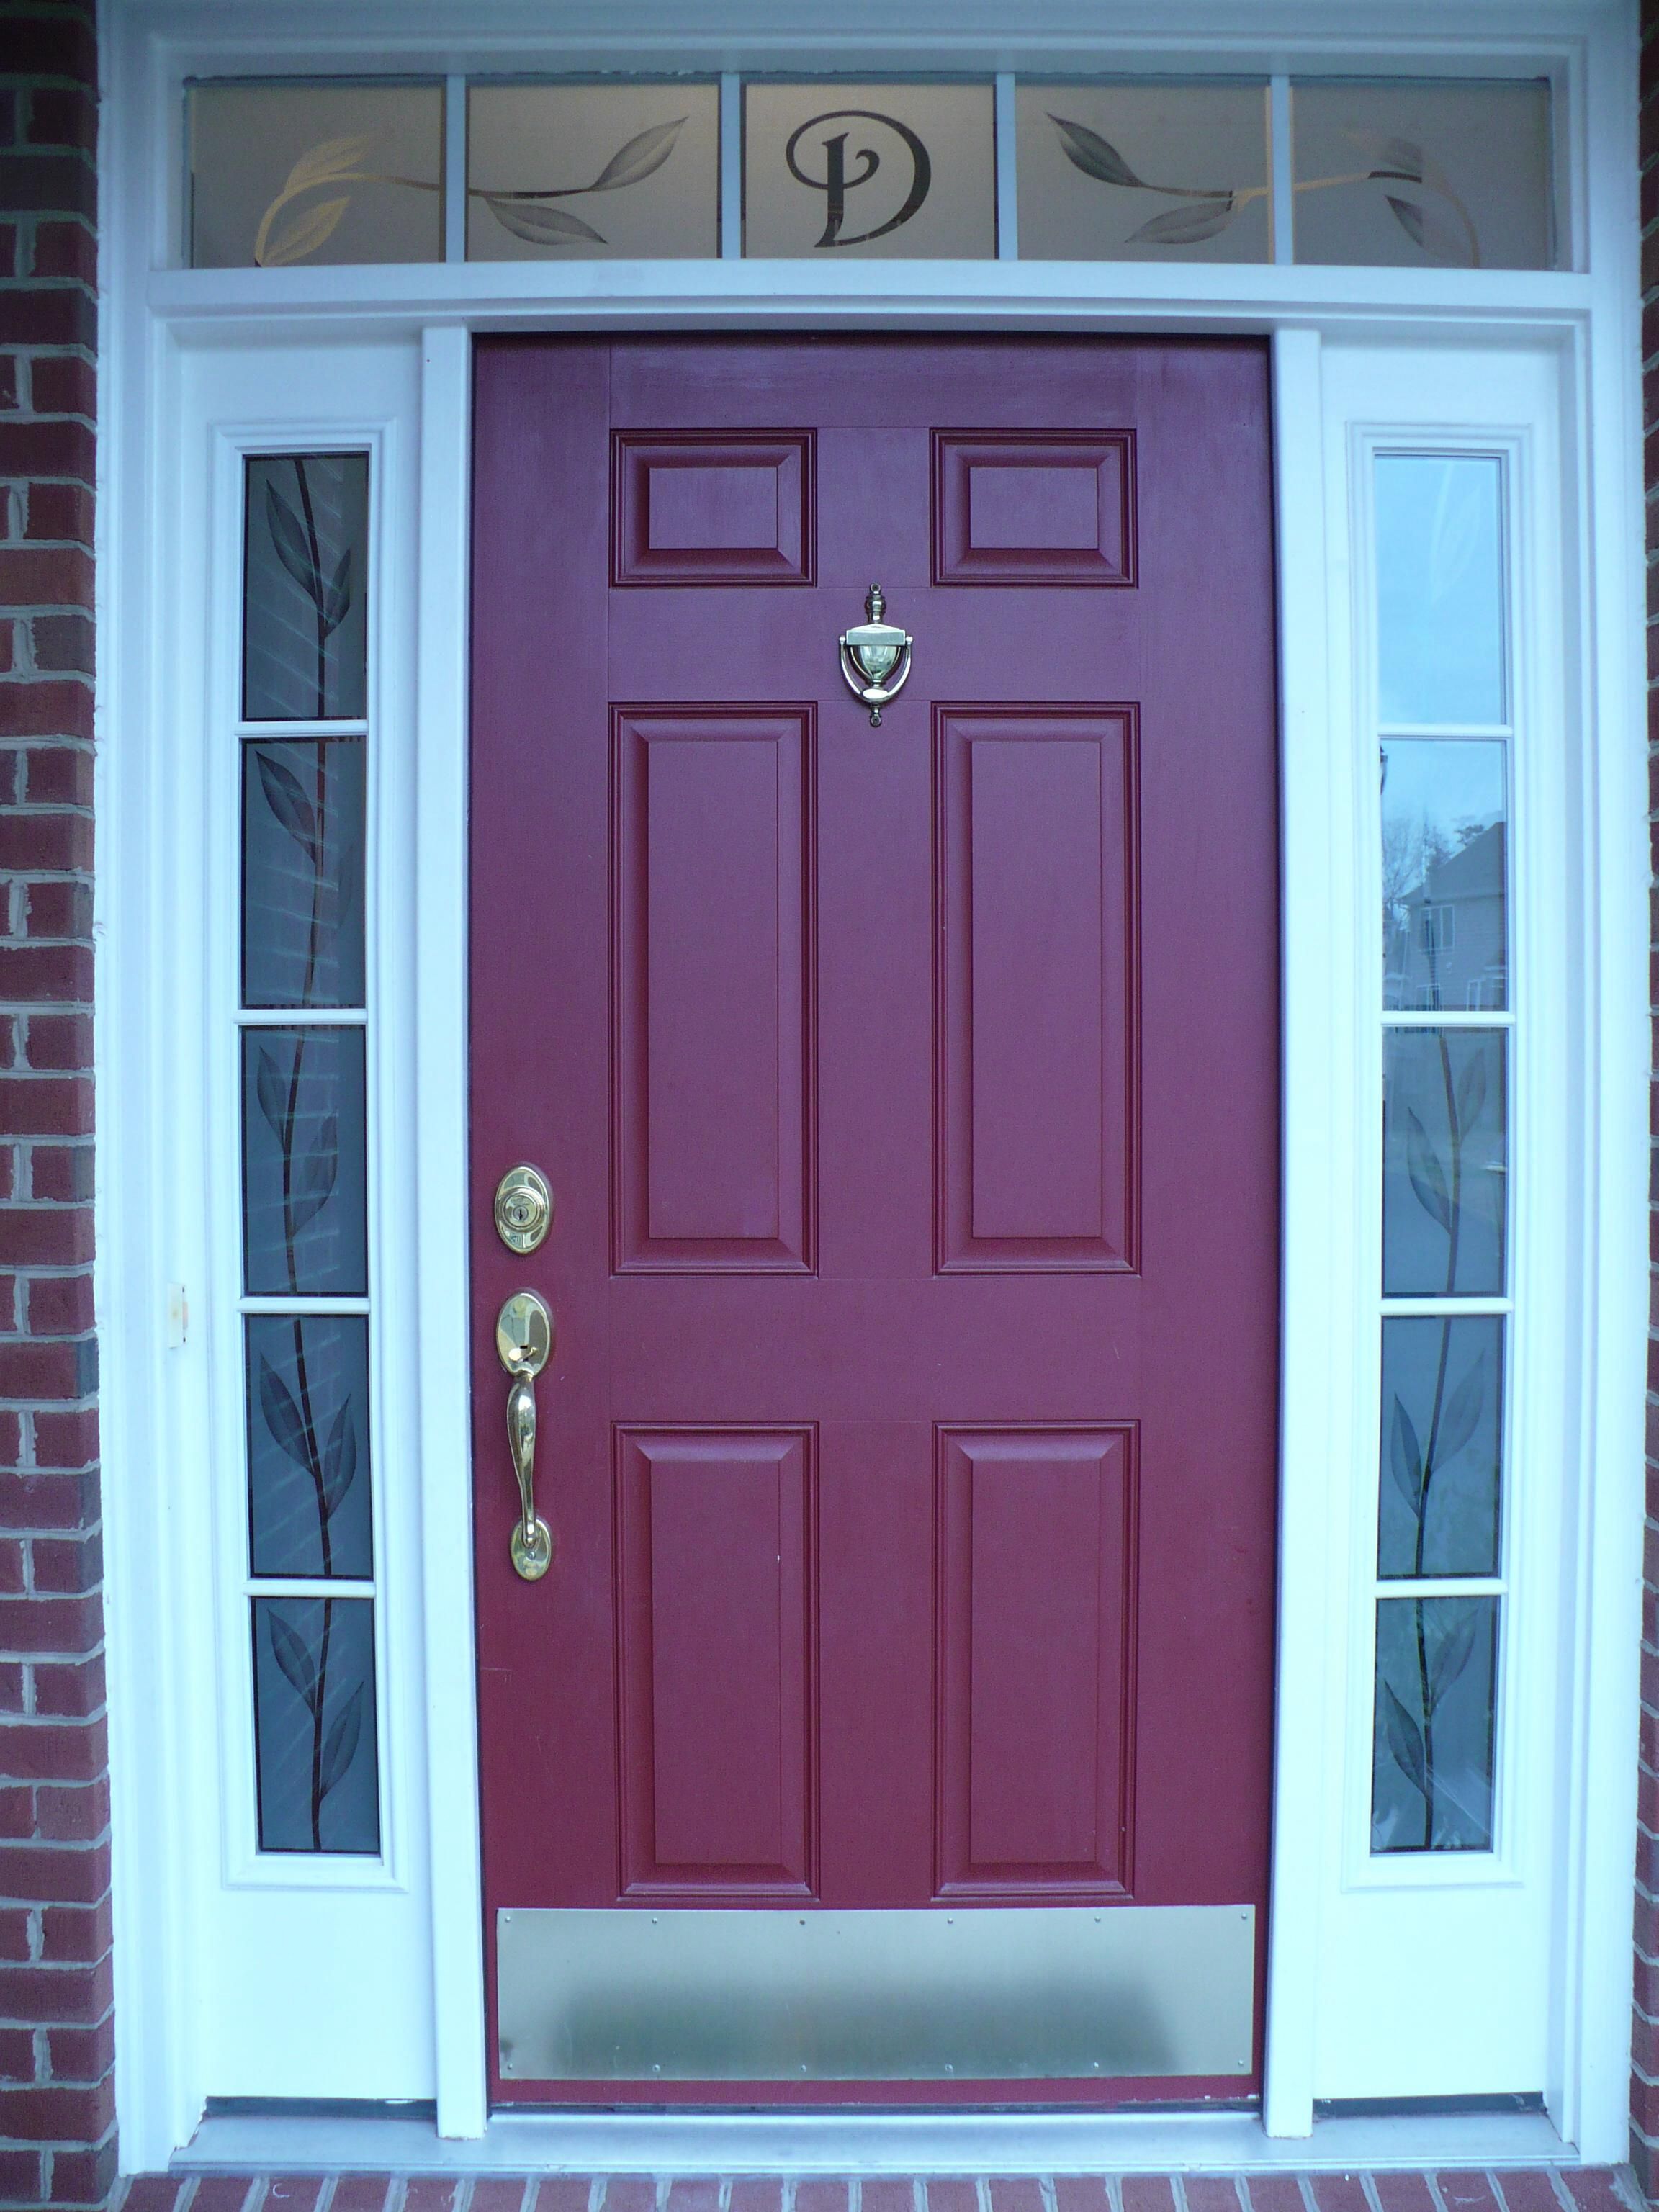 Home entrance door entrance doors with side panels for Entry door with window